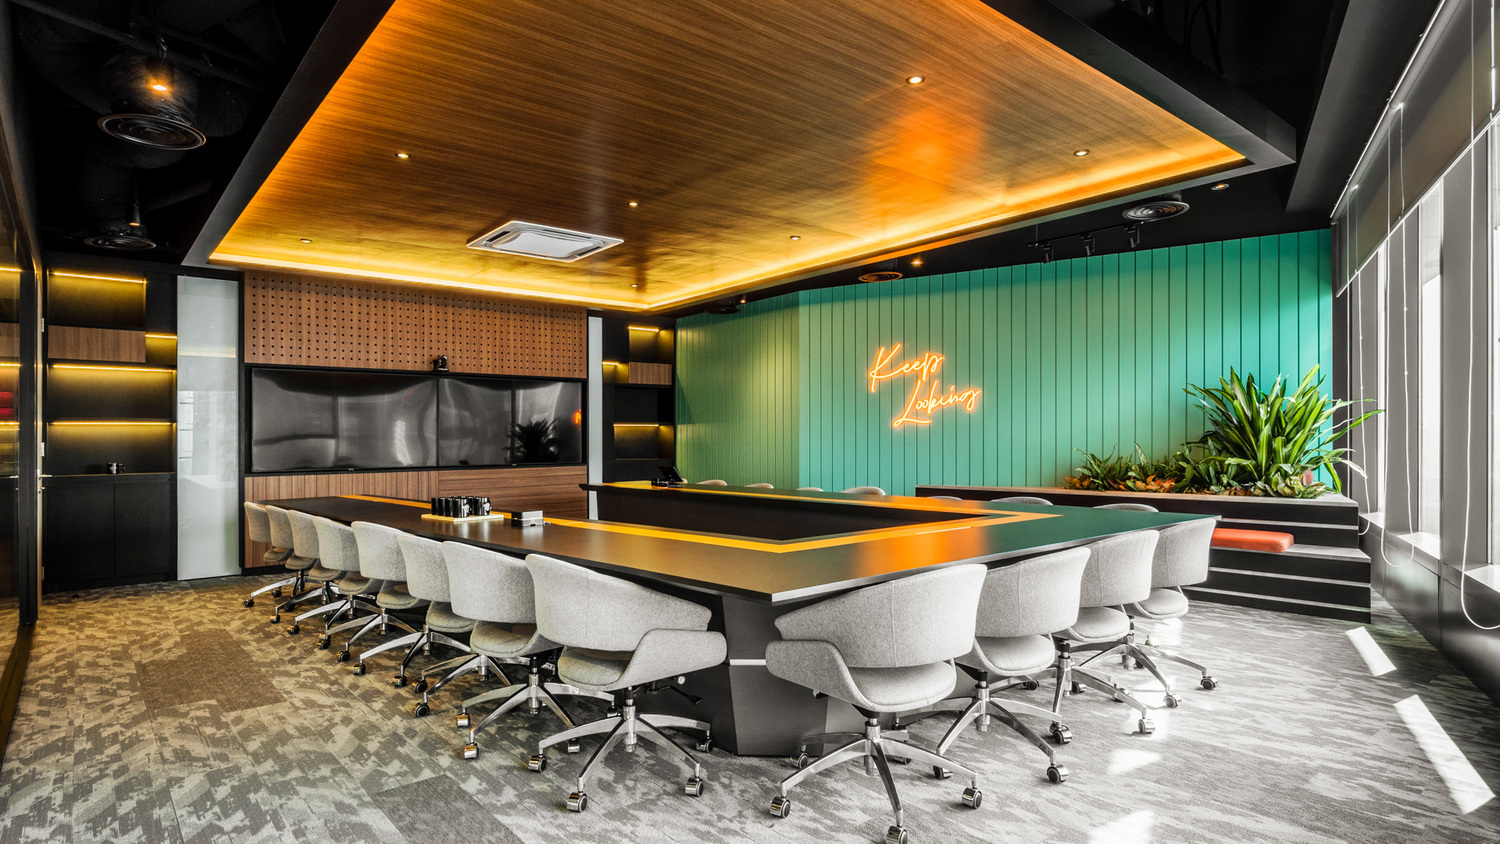 Room, Conference Room, Meeting Room, Indoors, Chair, Furniture